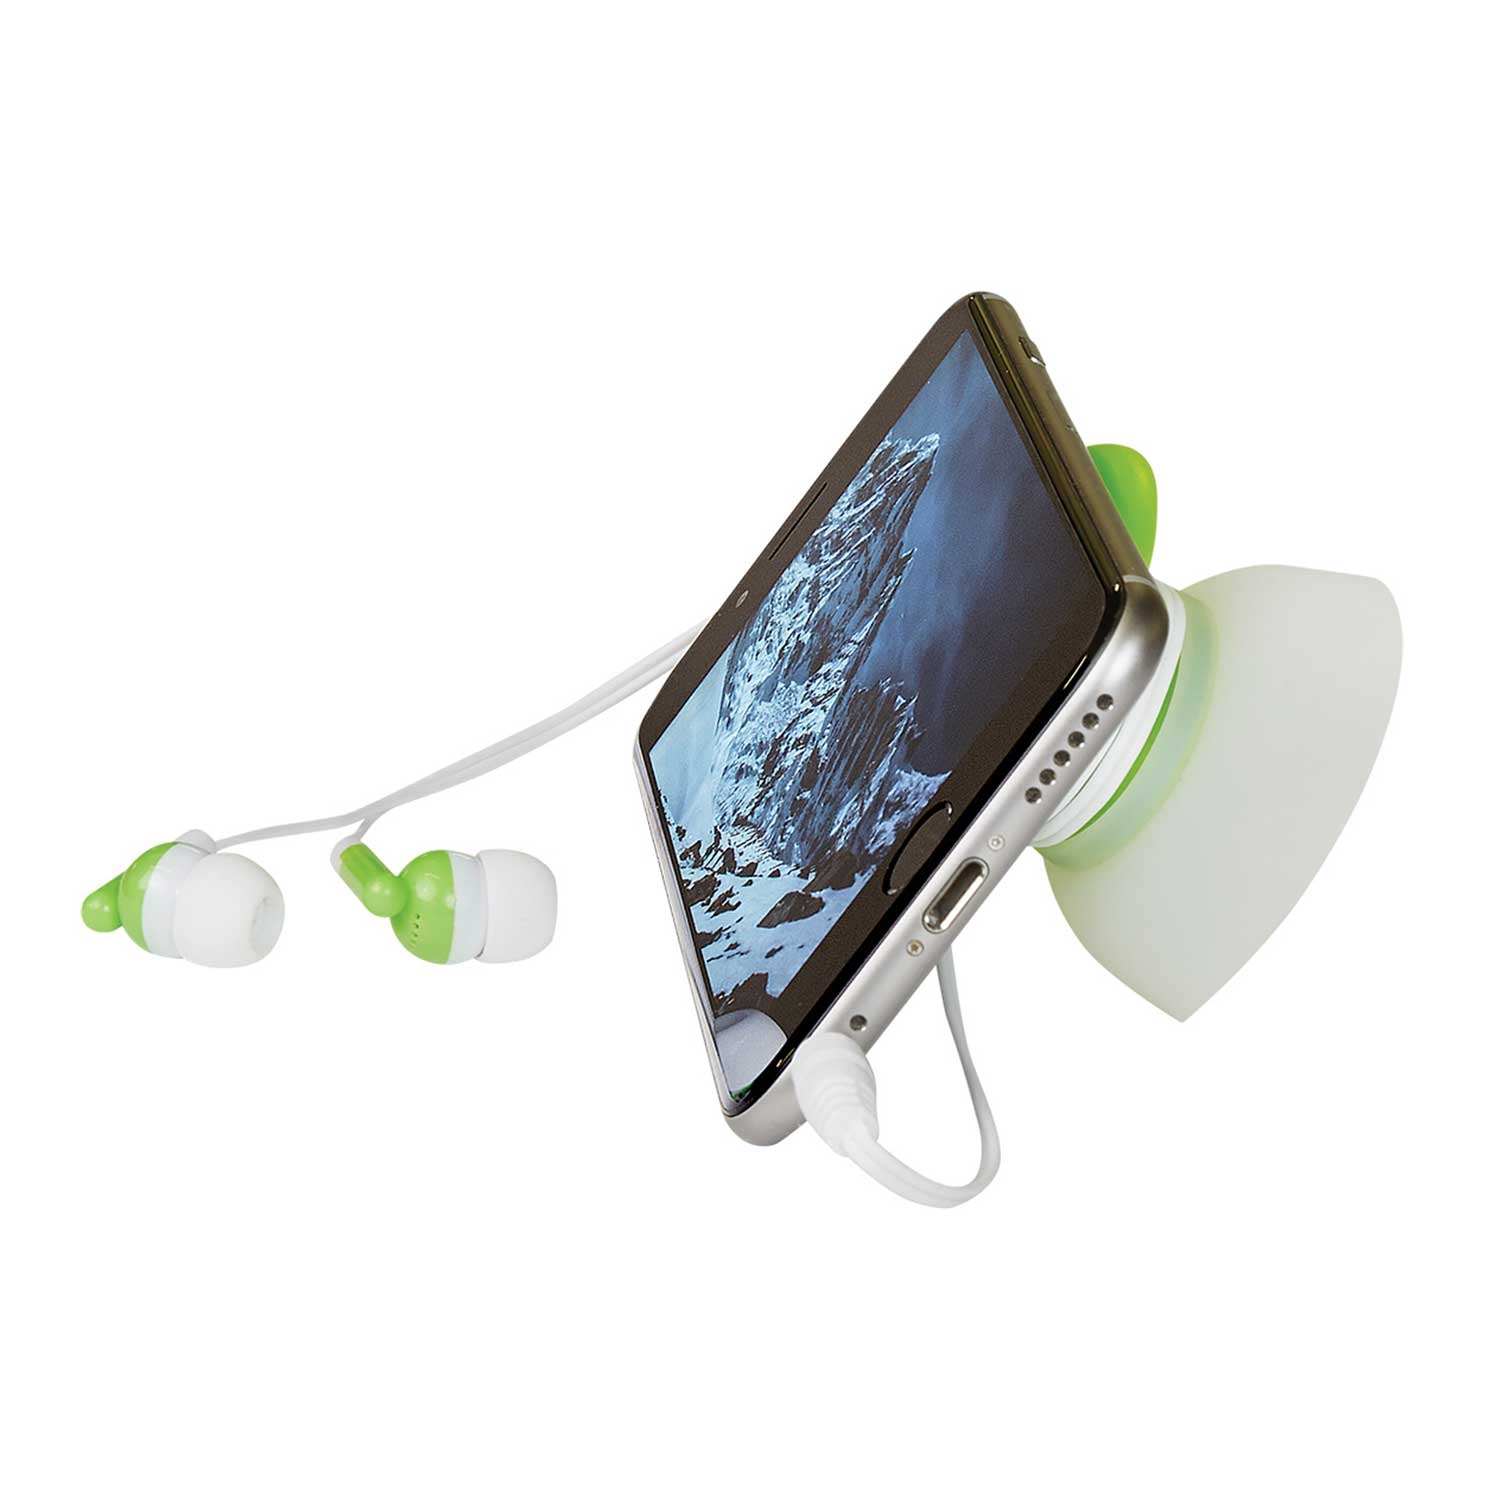 2-In-1 Earbuds With Holder And Phone Stand